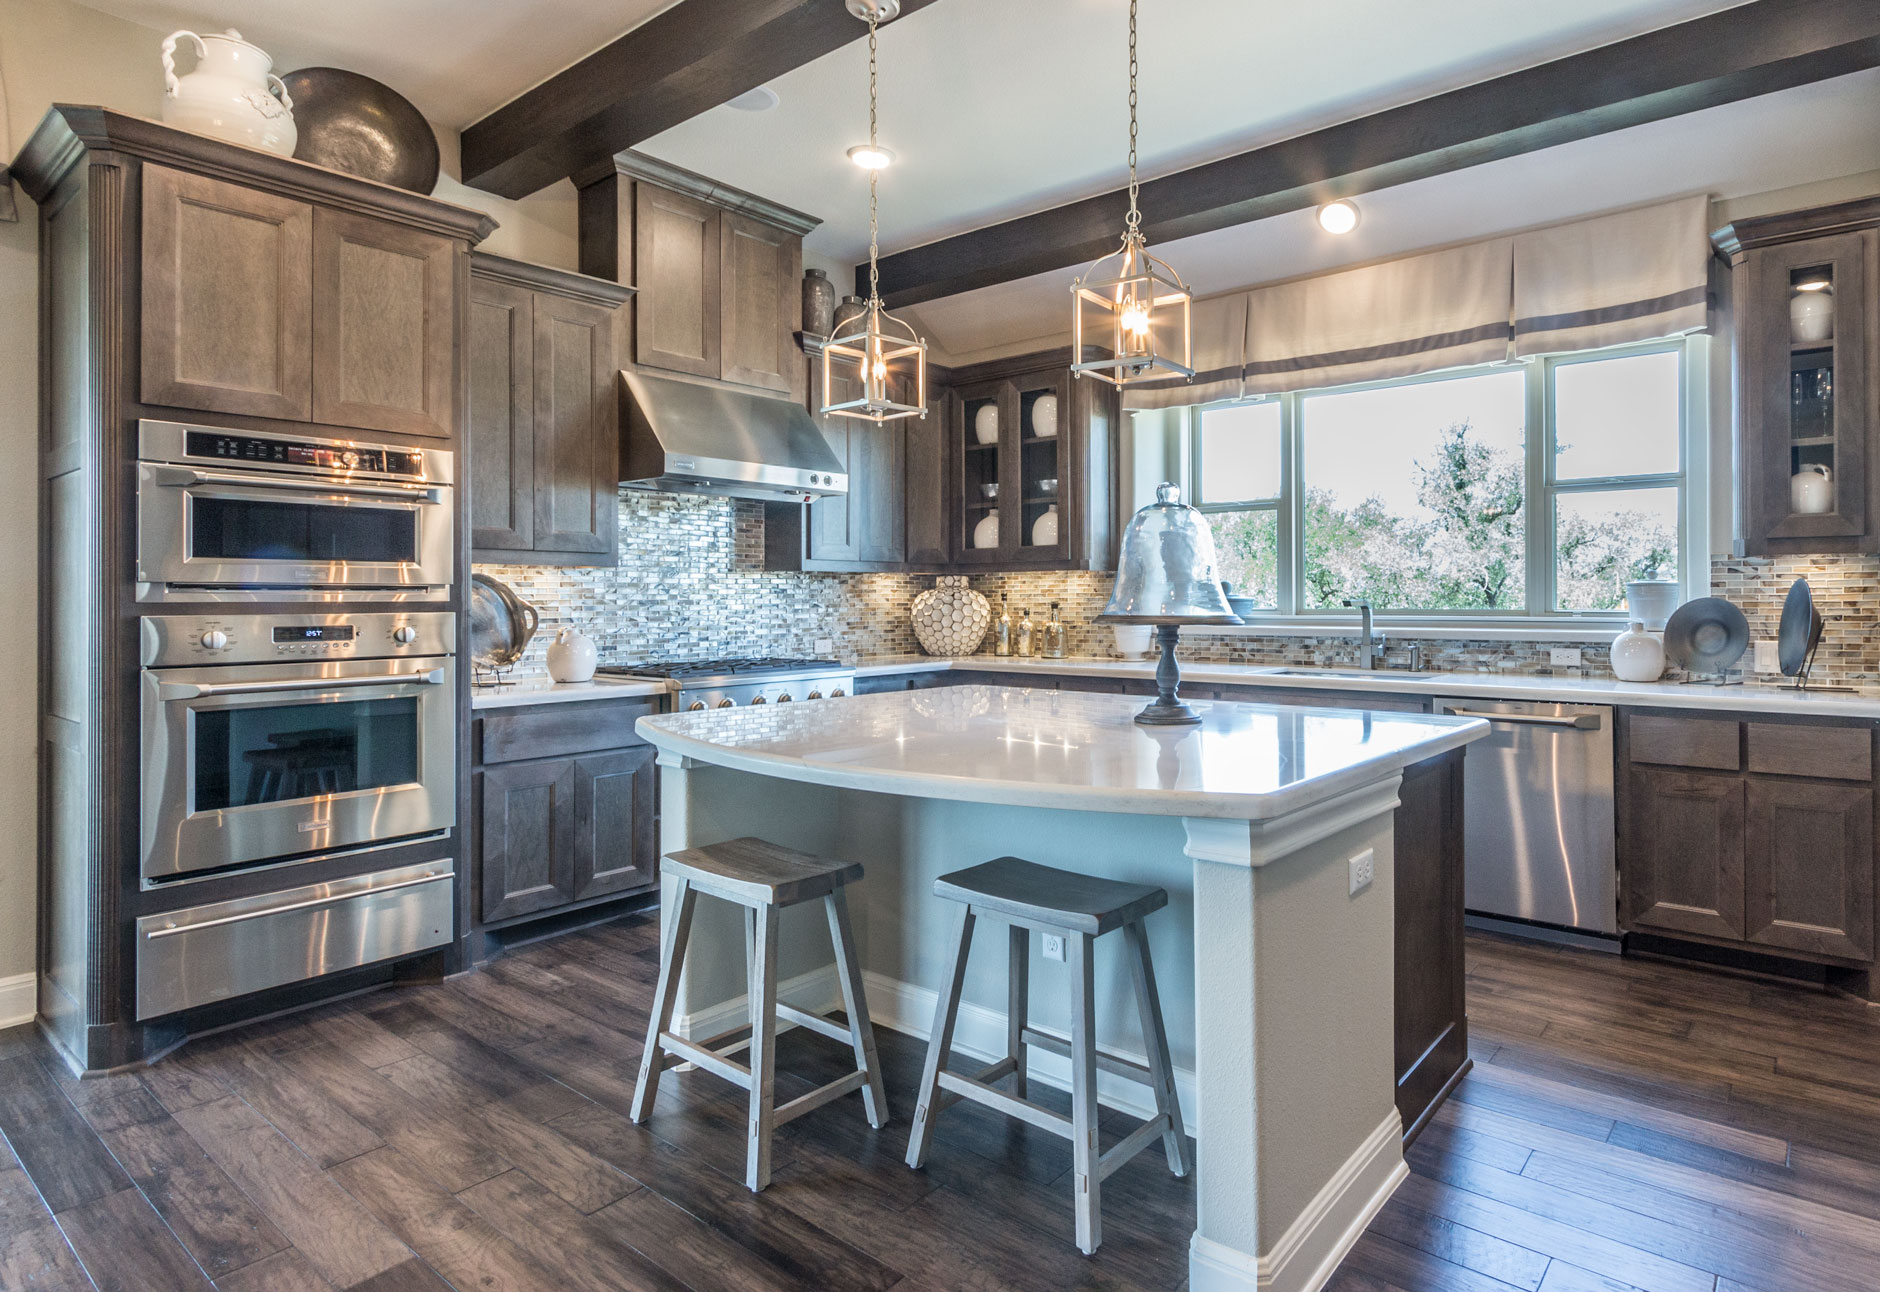 Kitchen 089 - Burrows Cabinets - central Texas builder-direct custom ...